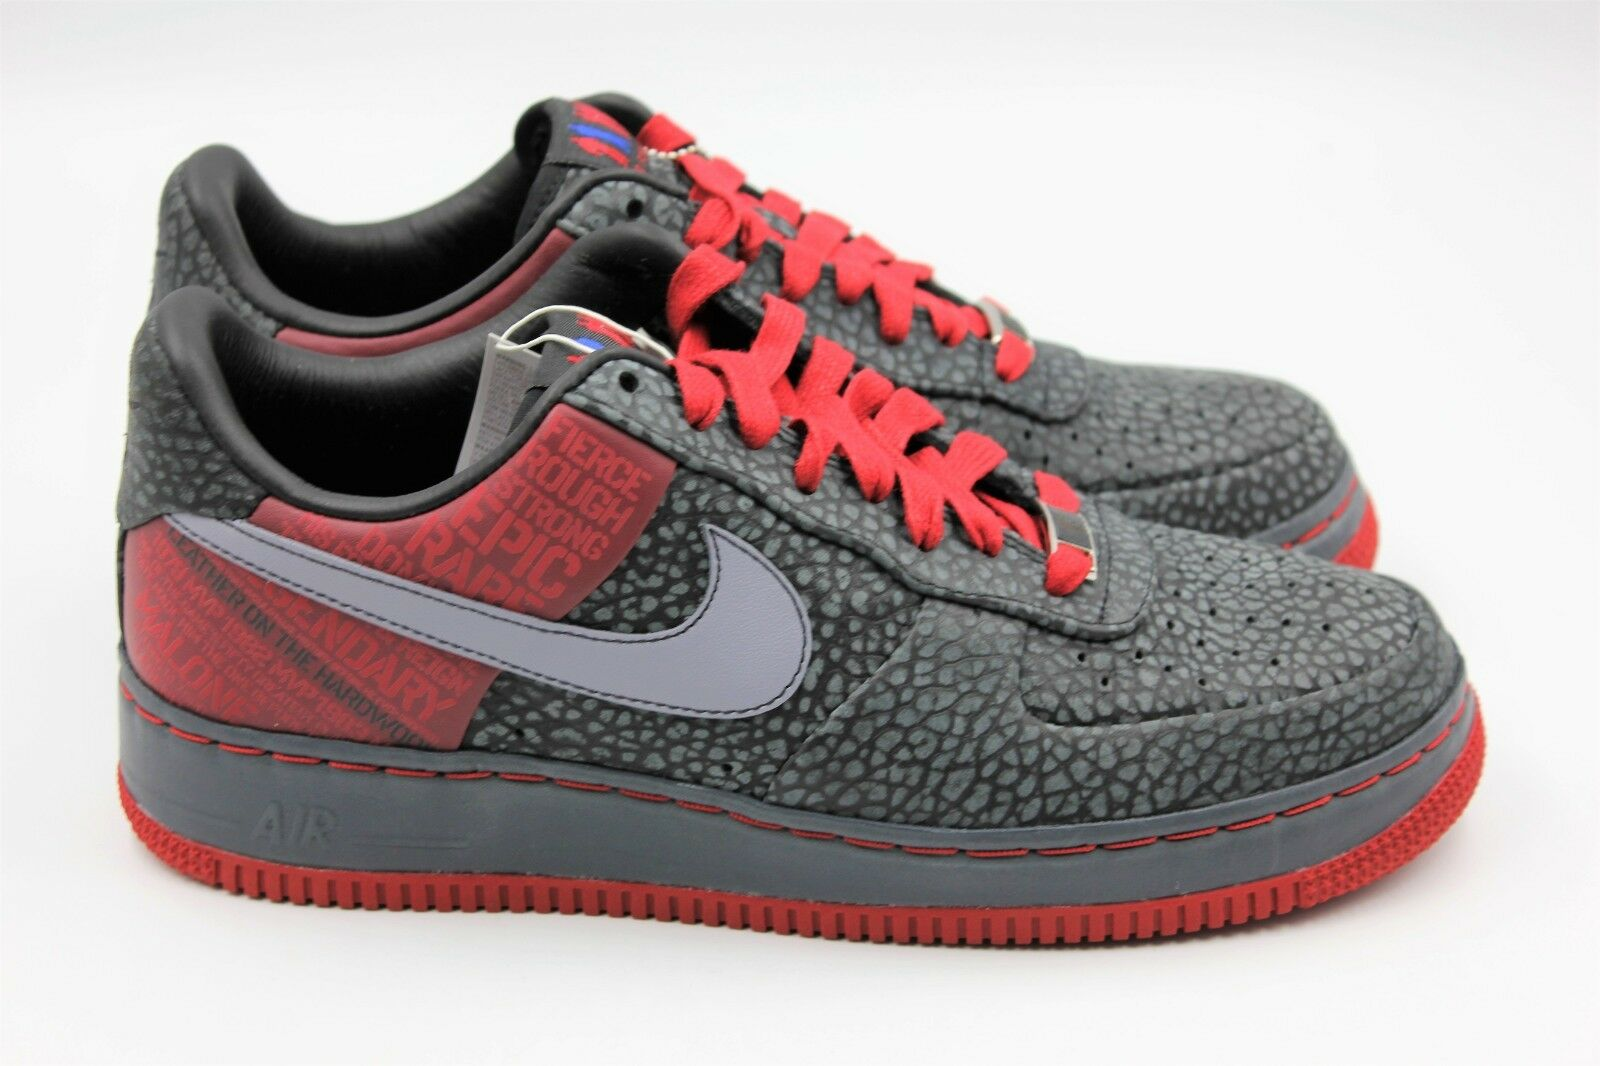 NIKE Air Force 1 Supreme '07 (Malone) - Black Red - Men's 8 - NEW Authentic